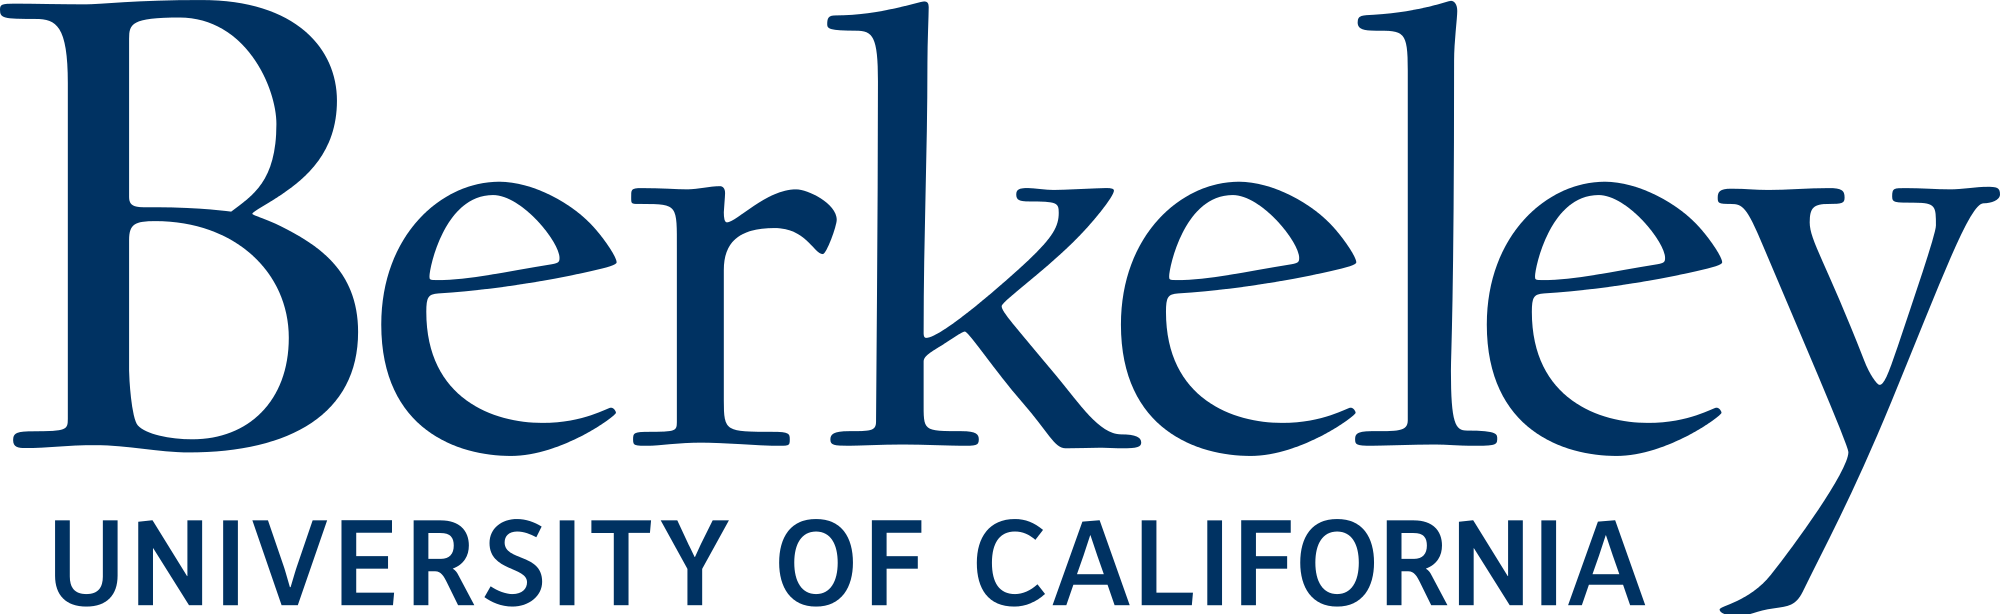 University of California Berkely